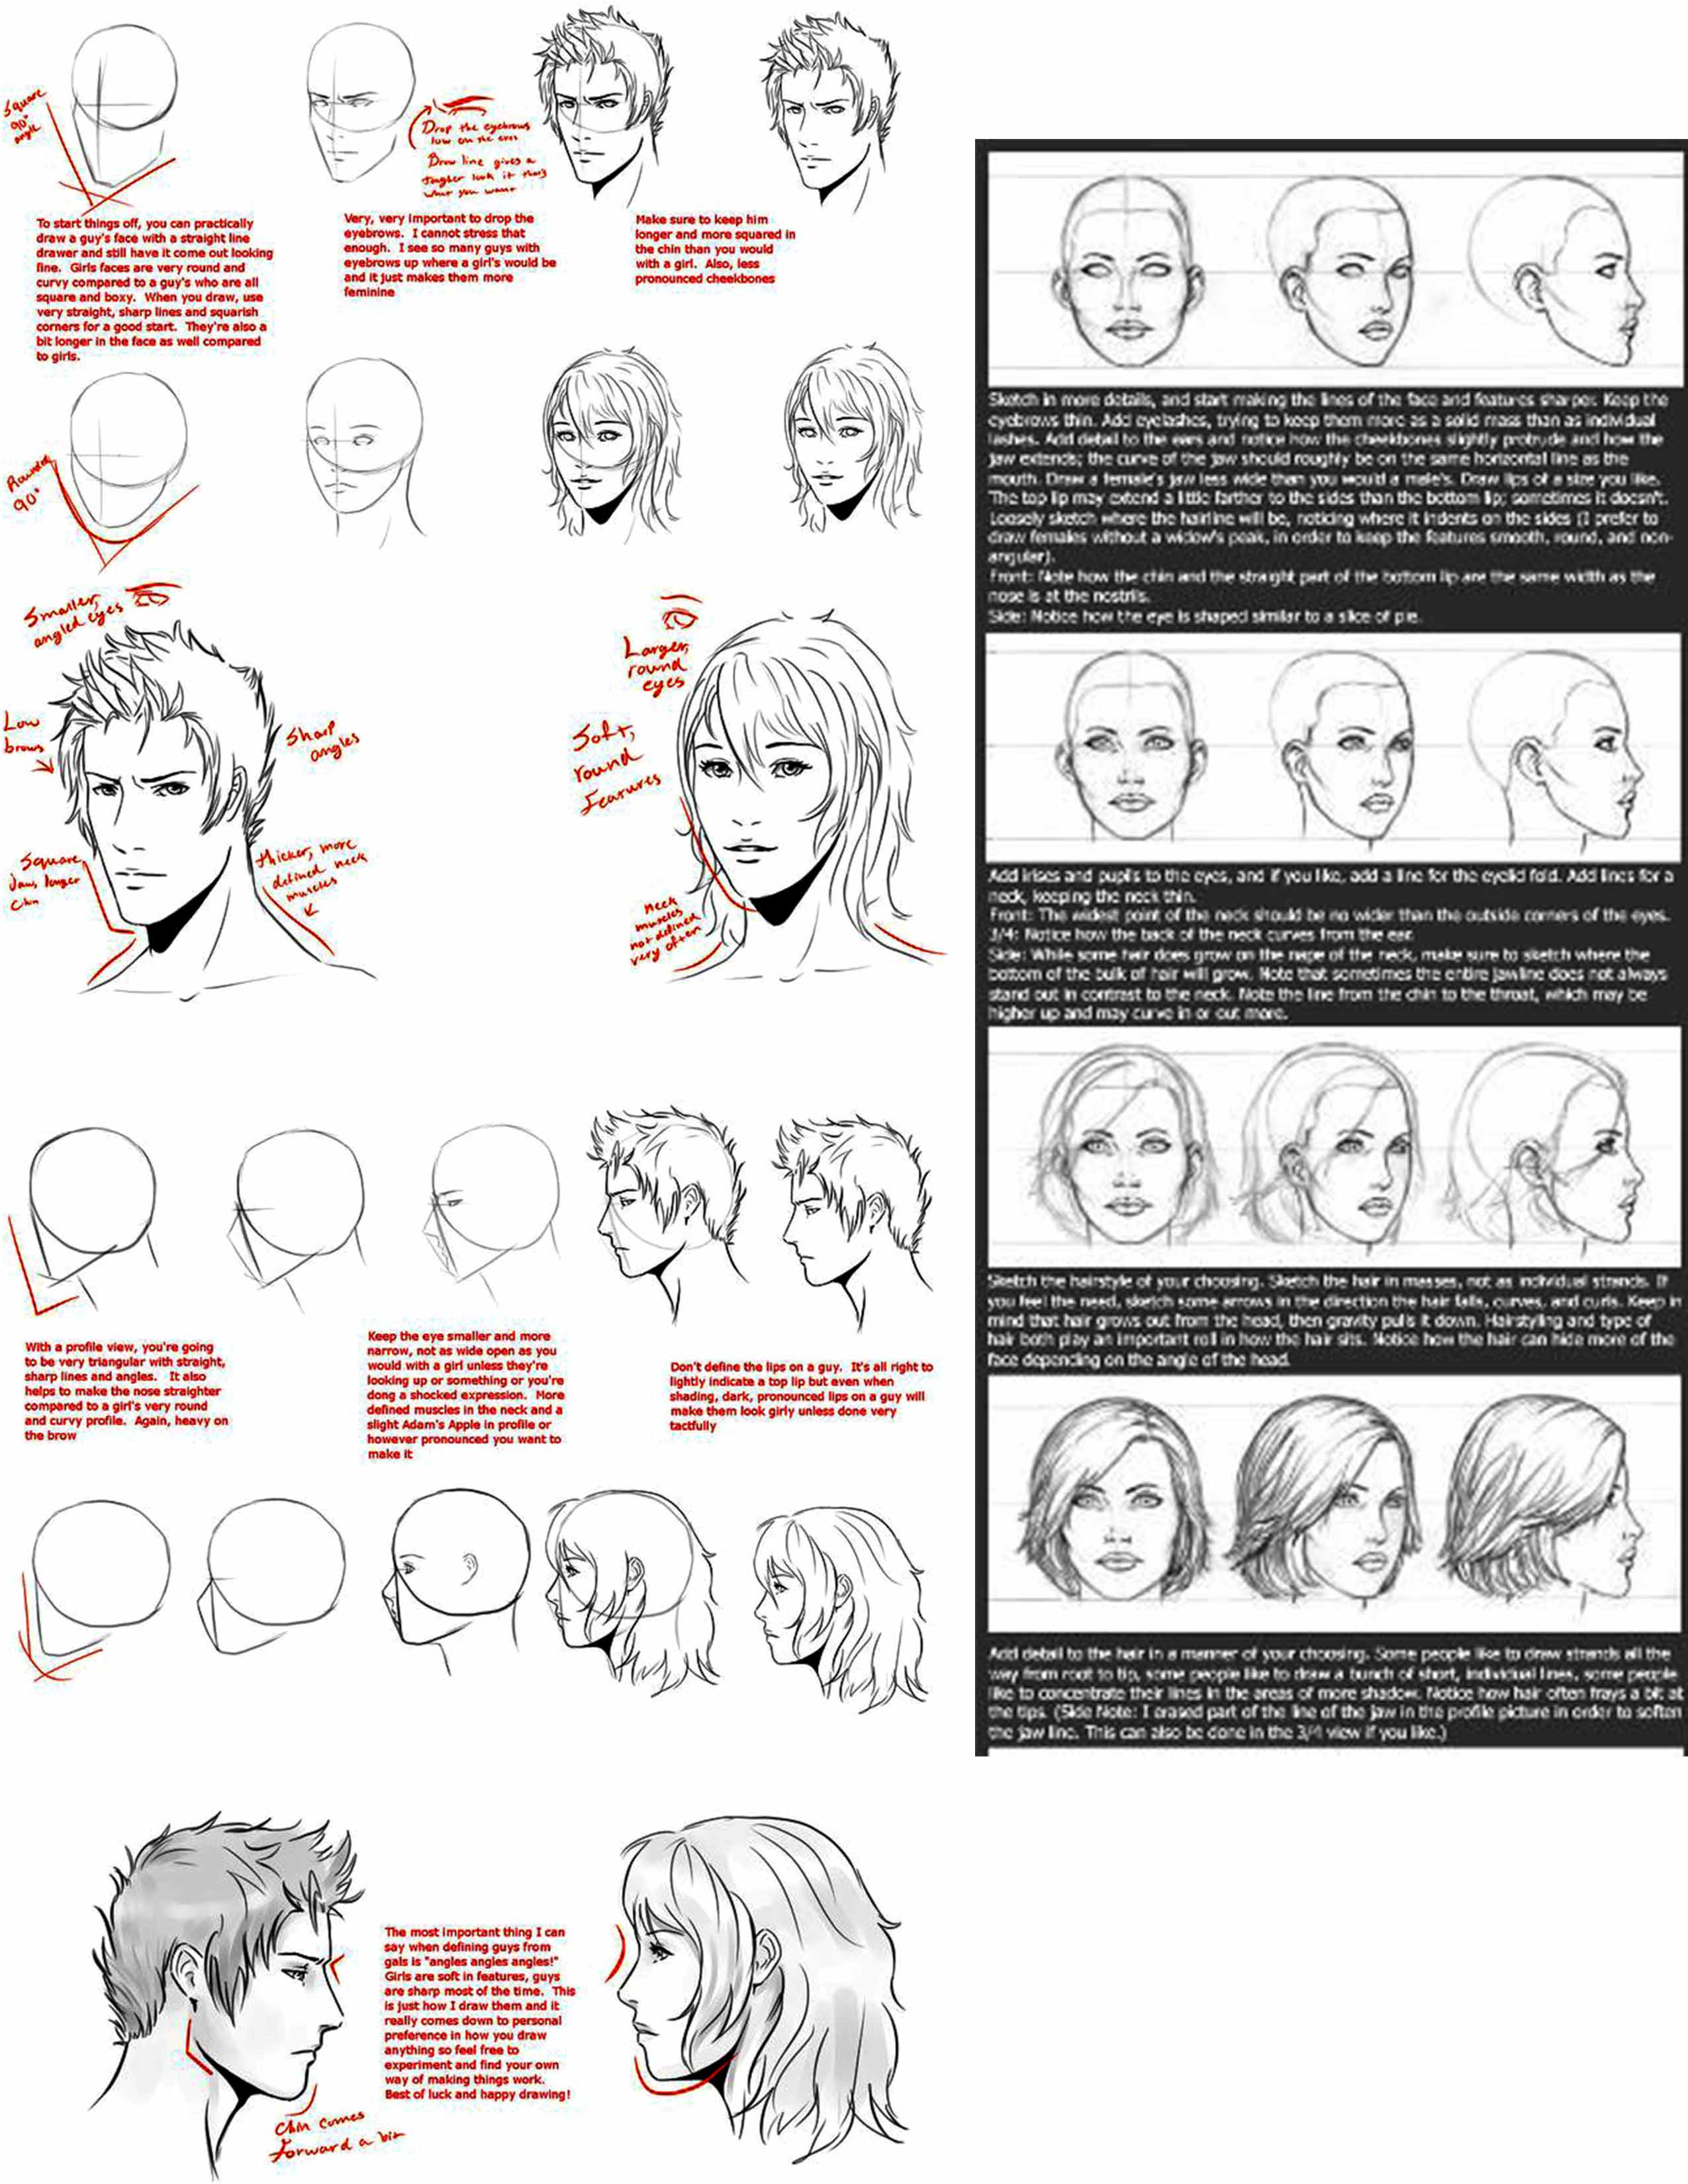 Drawing---Heads-Page-2_opt